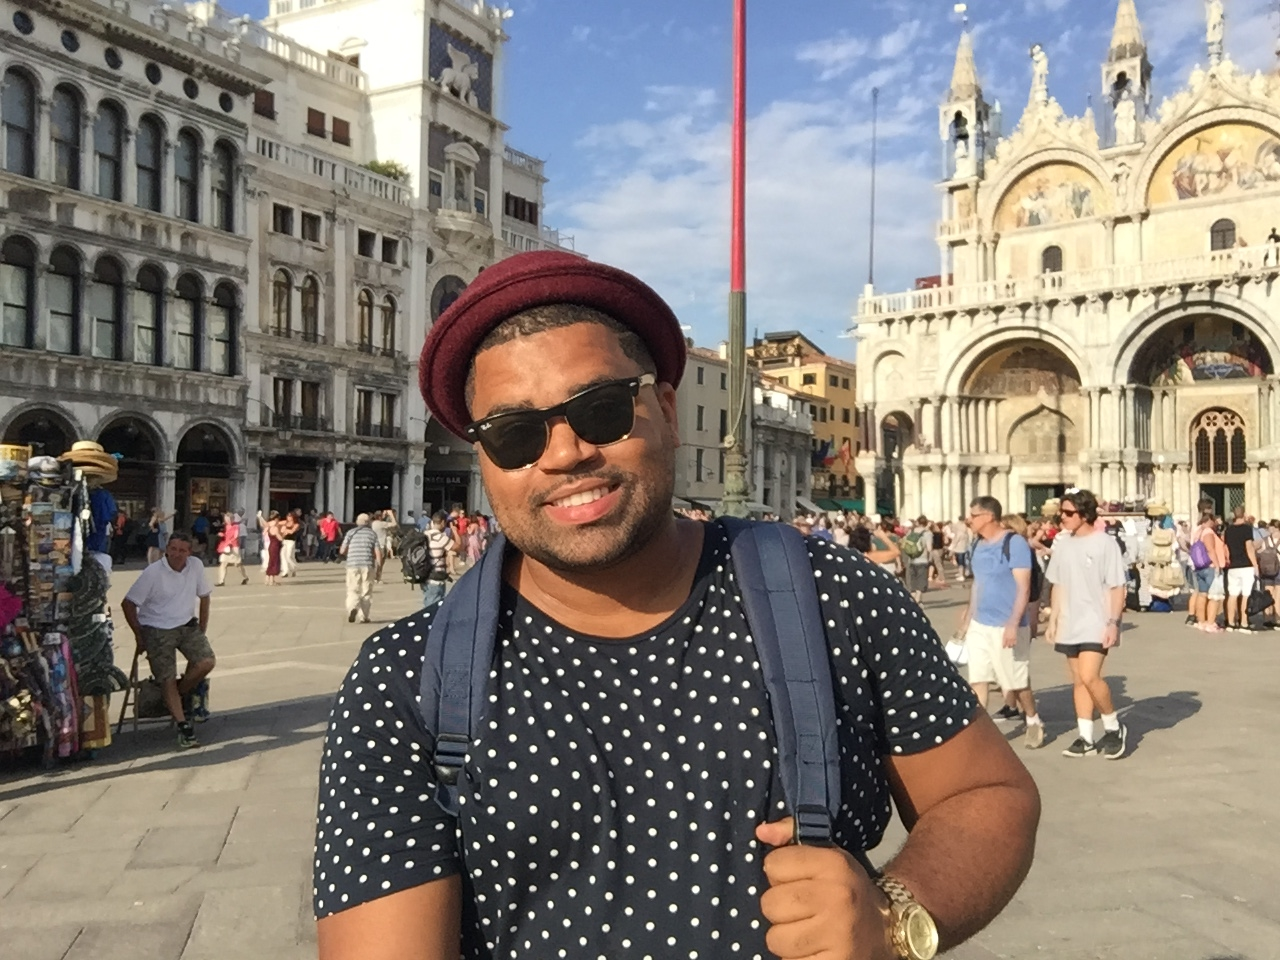 Snapped a photo in St. Mark's Square in front of St. Mark's Basilica